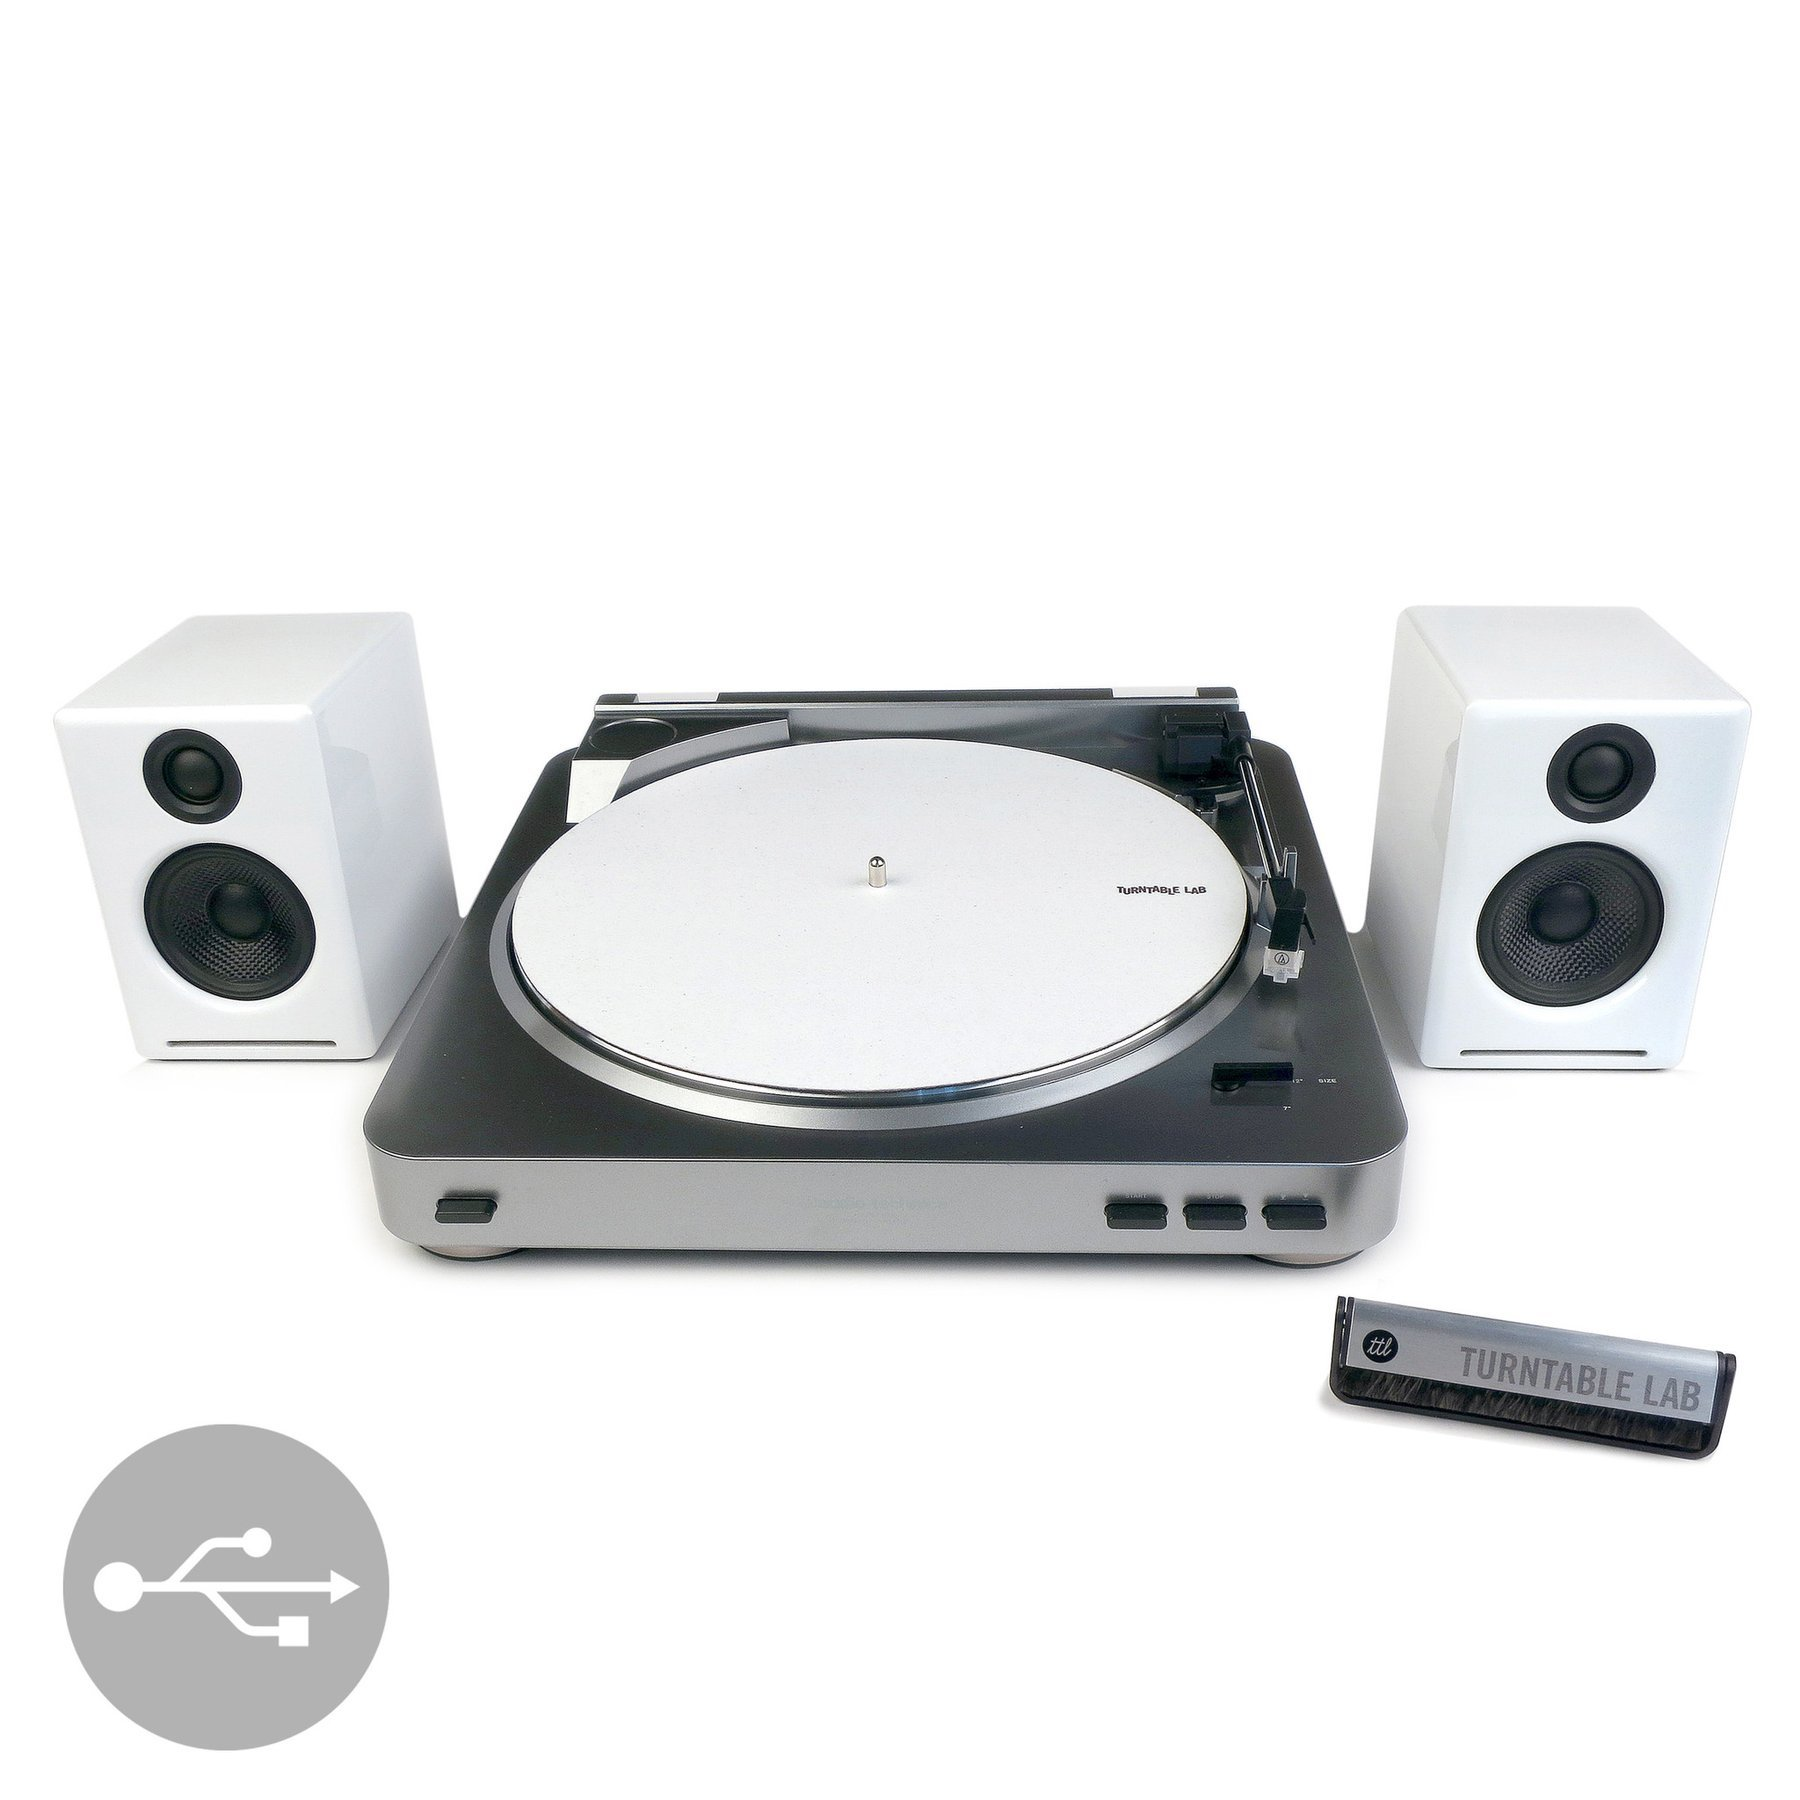 Audio-Technica: AT-LP60-USB Turntable + Audioengine A2+ Speakers Package - White